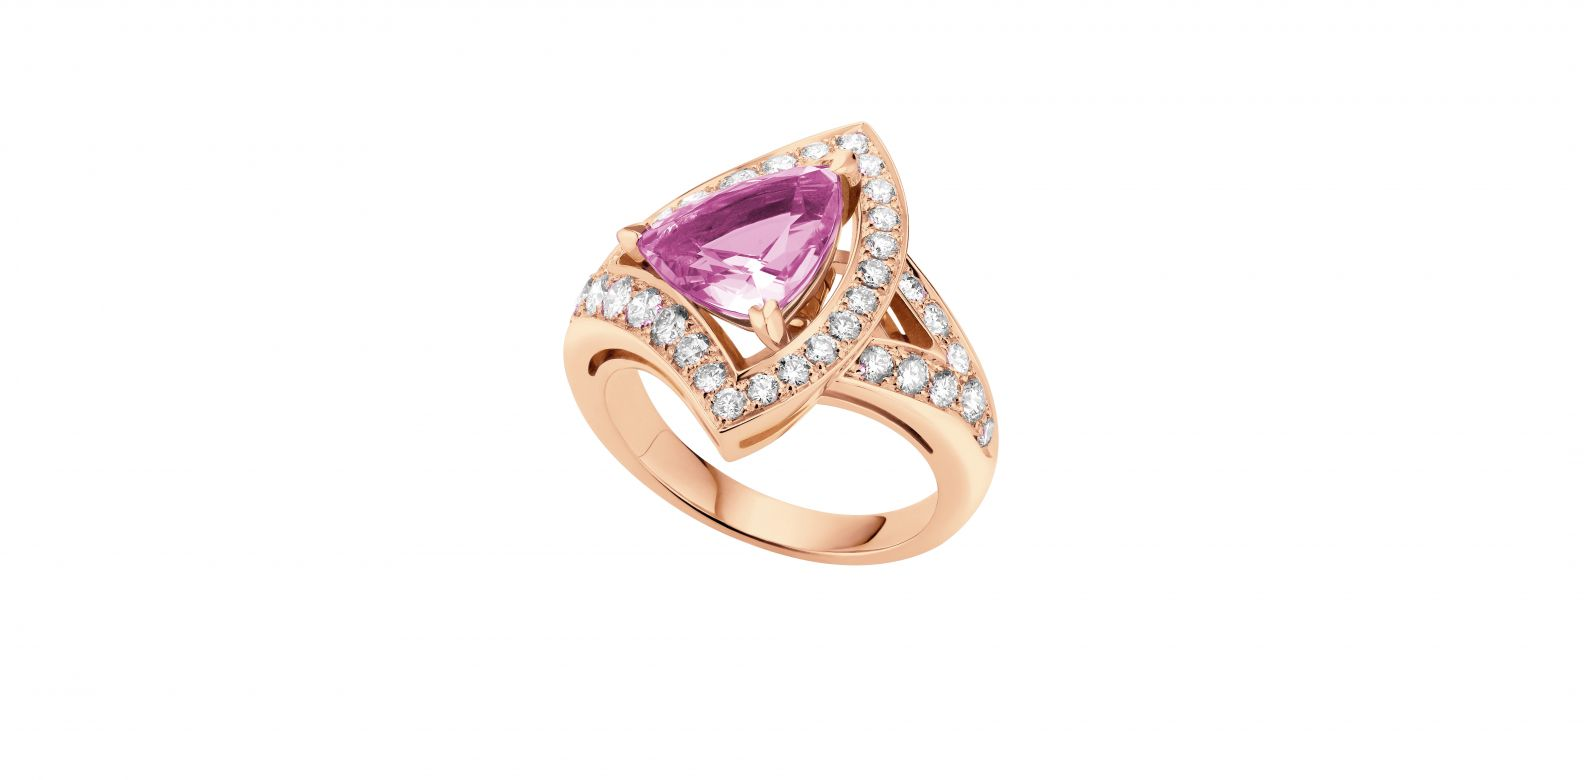 Ring in pink gold with pink tourmaline and pavé diamonds (0.68ct)